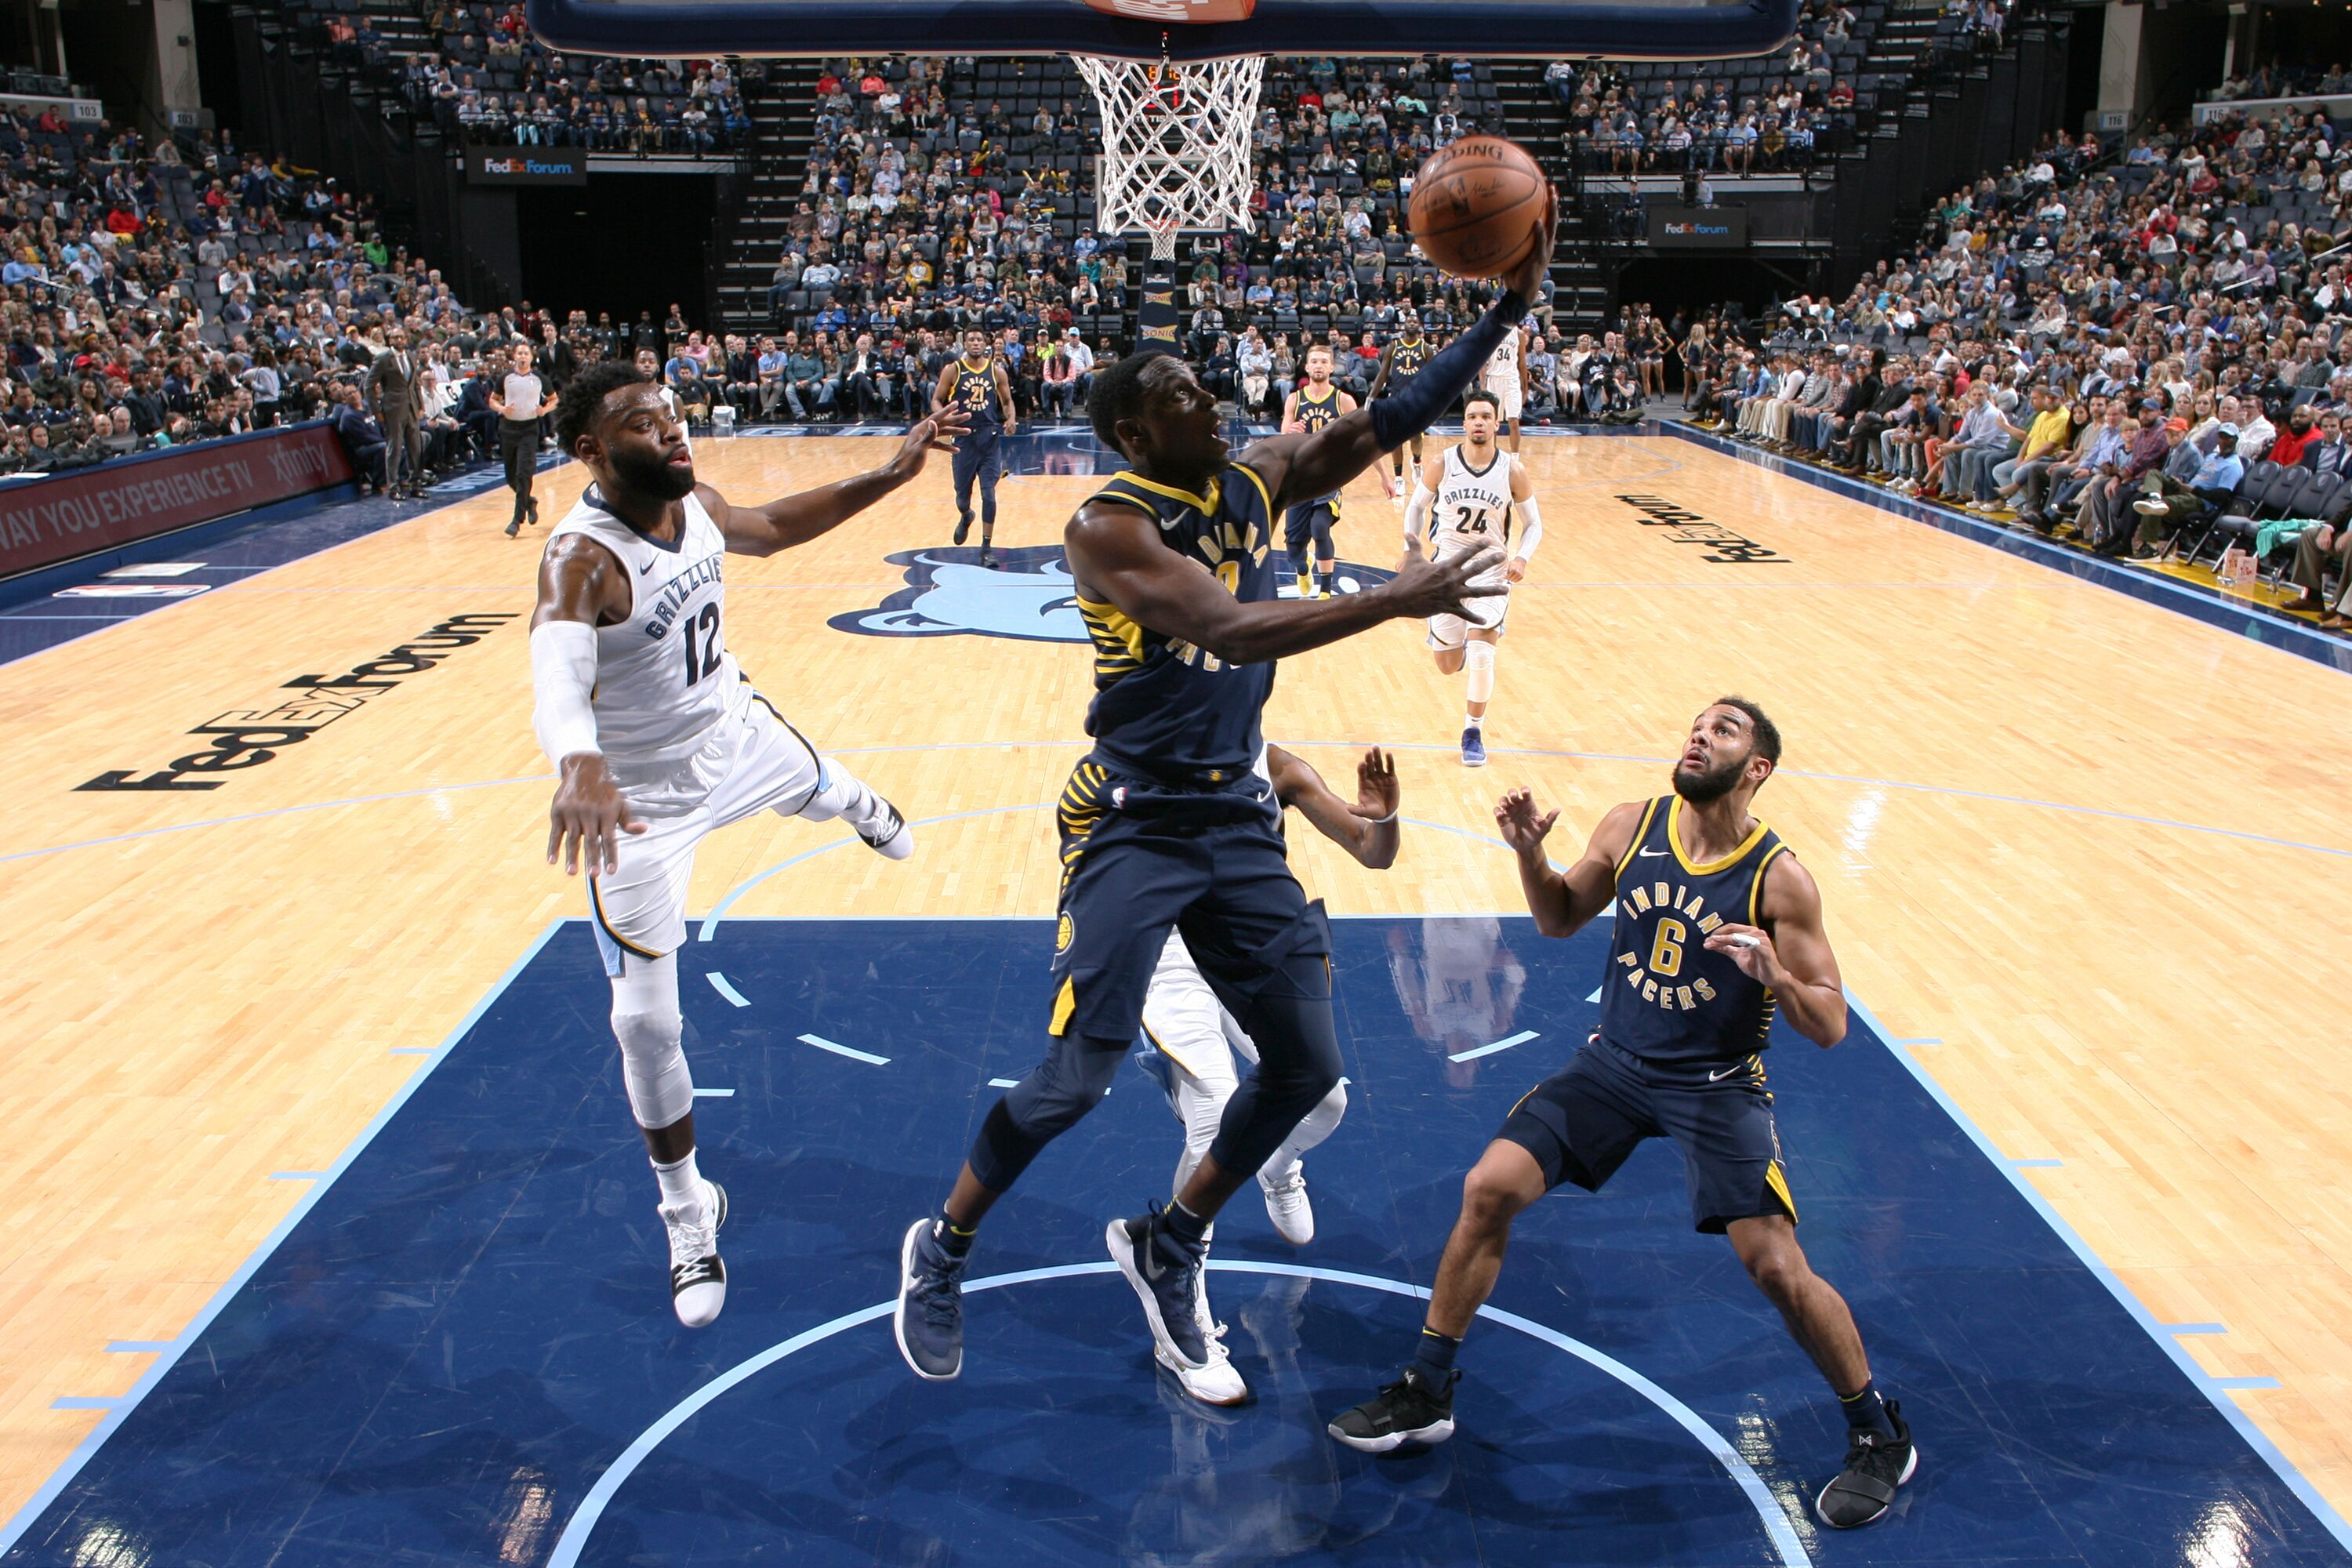 874702174-indiana-pacers-v-memphis-grizzlies.jpg